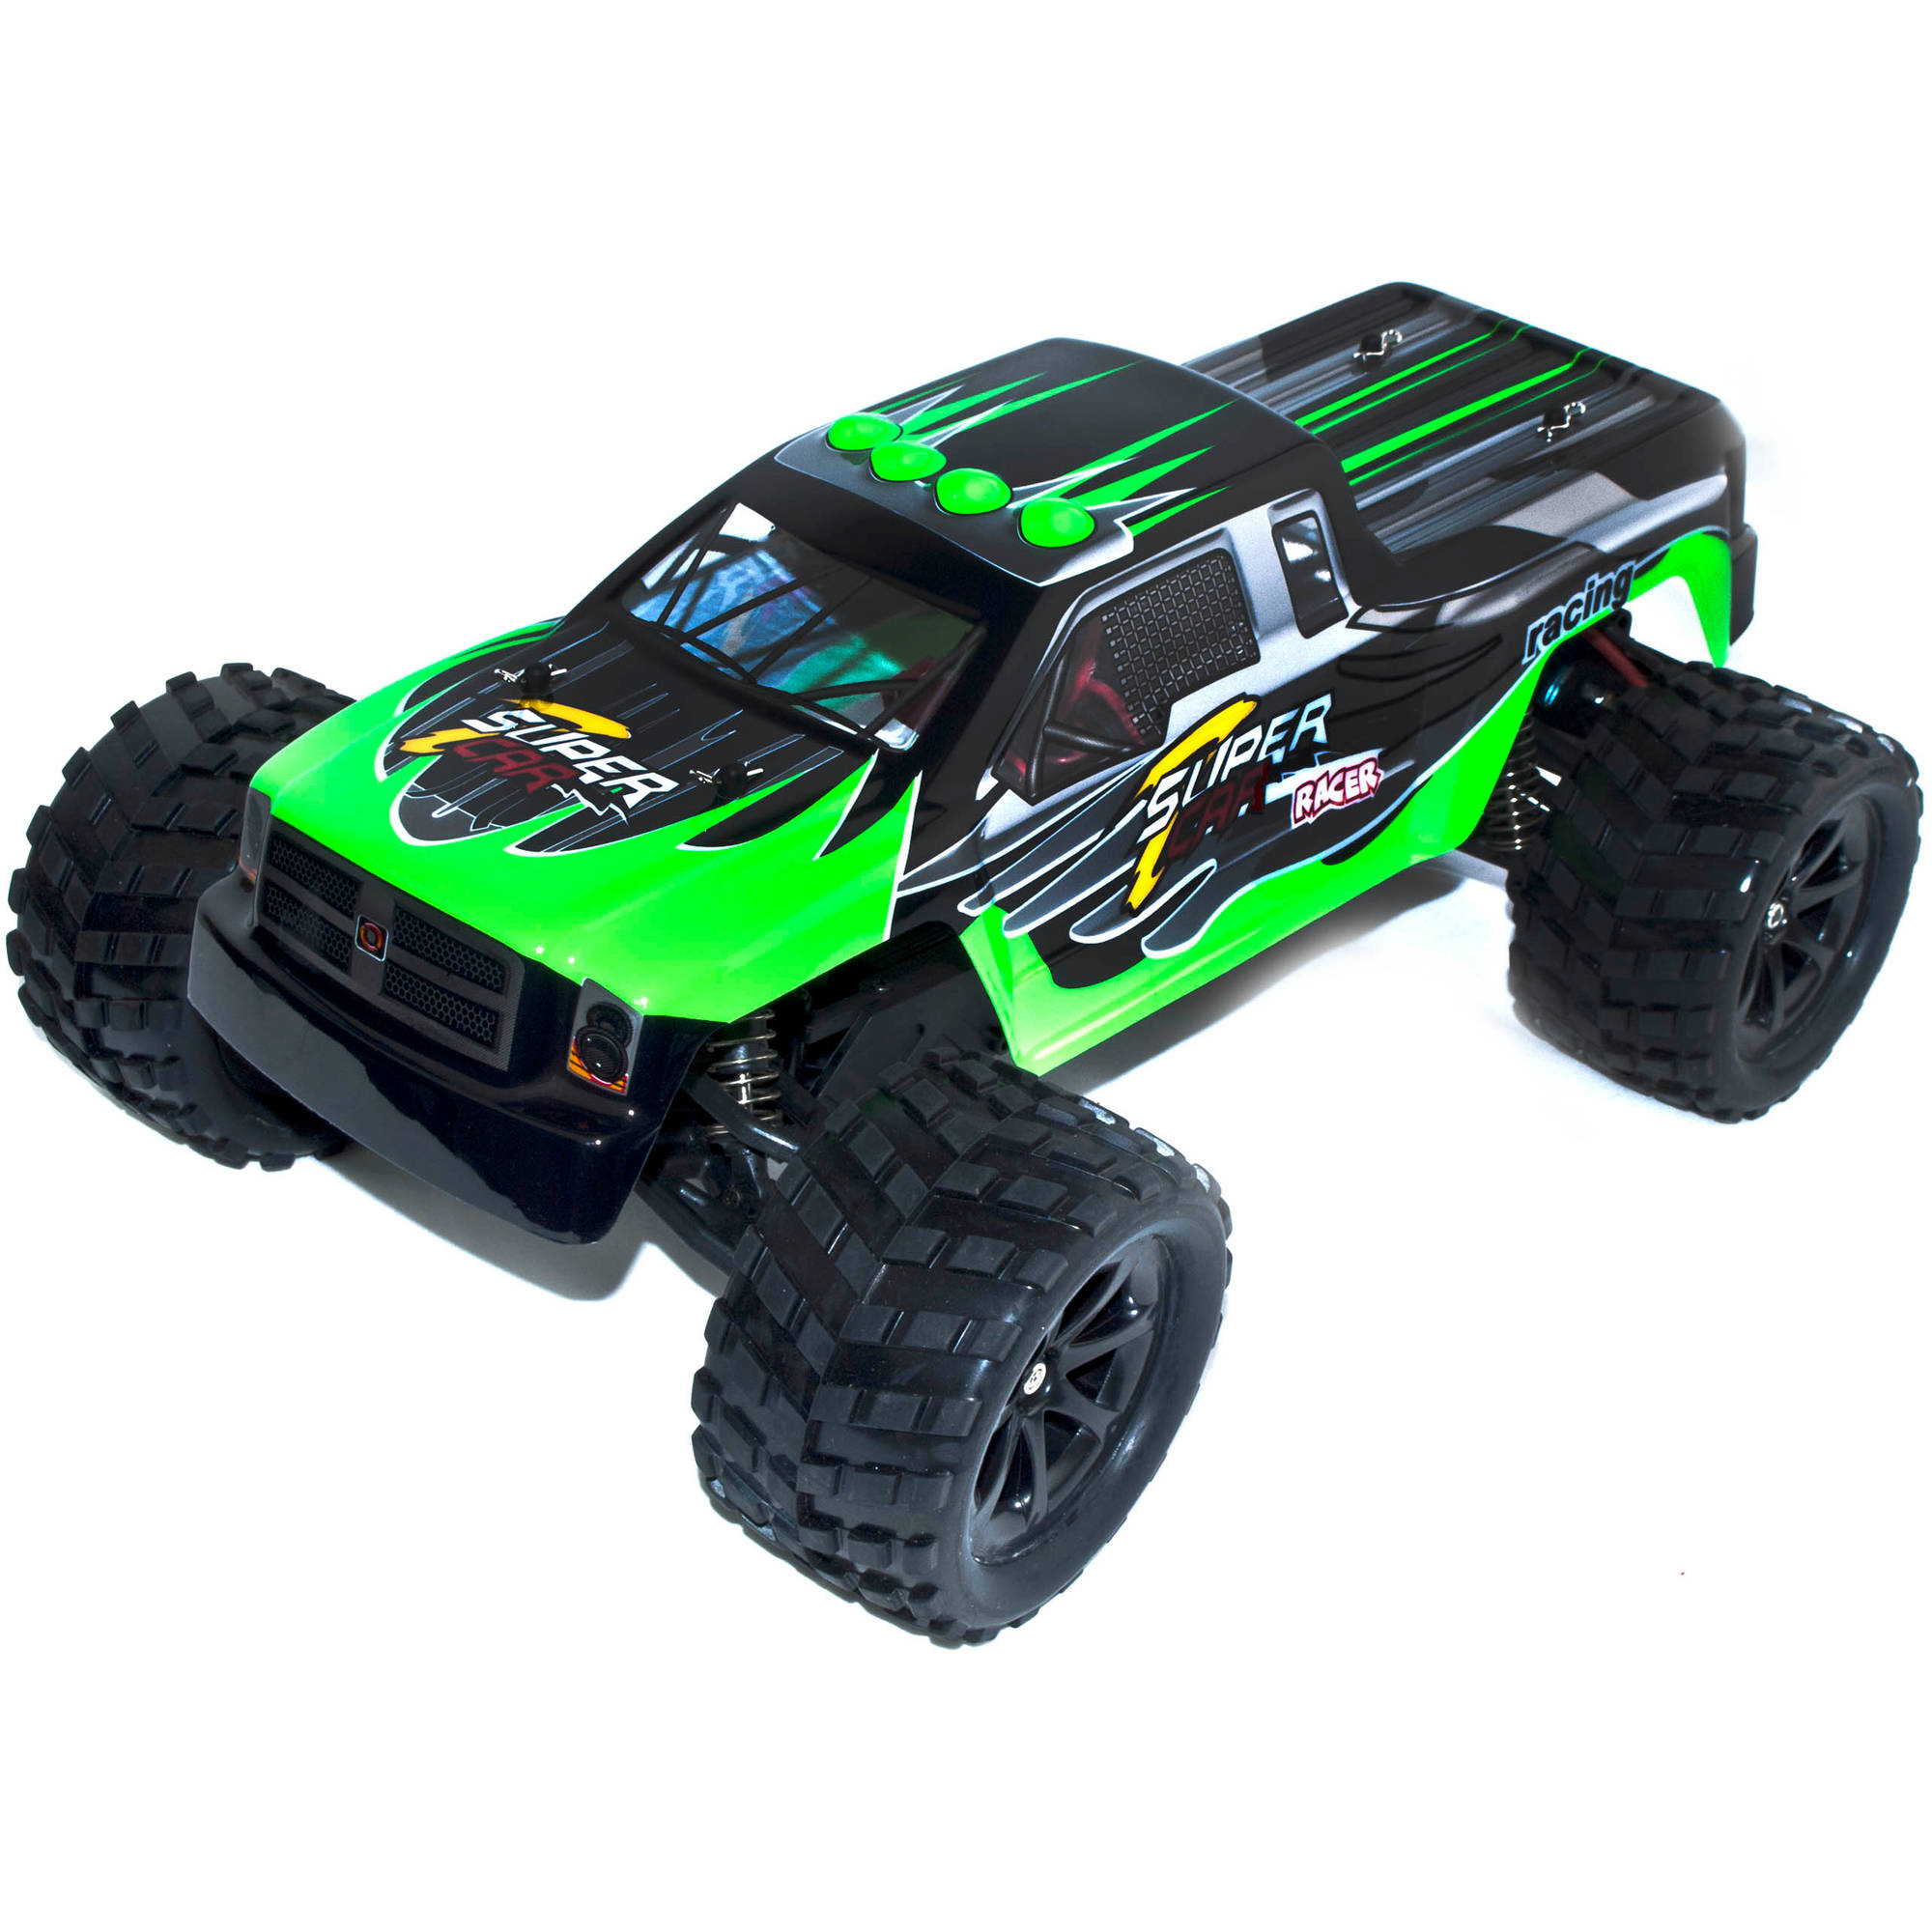 2.4G 1:12 Scale RCC66969GREEN Brushed Electric Powered Monster Truck